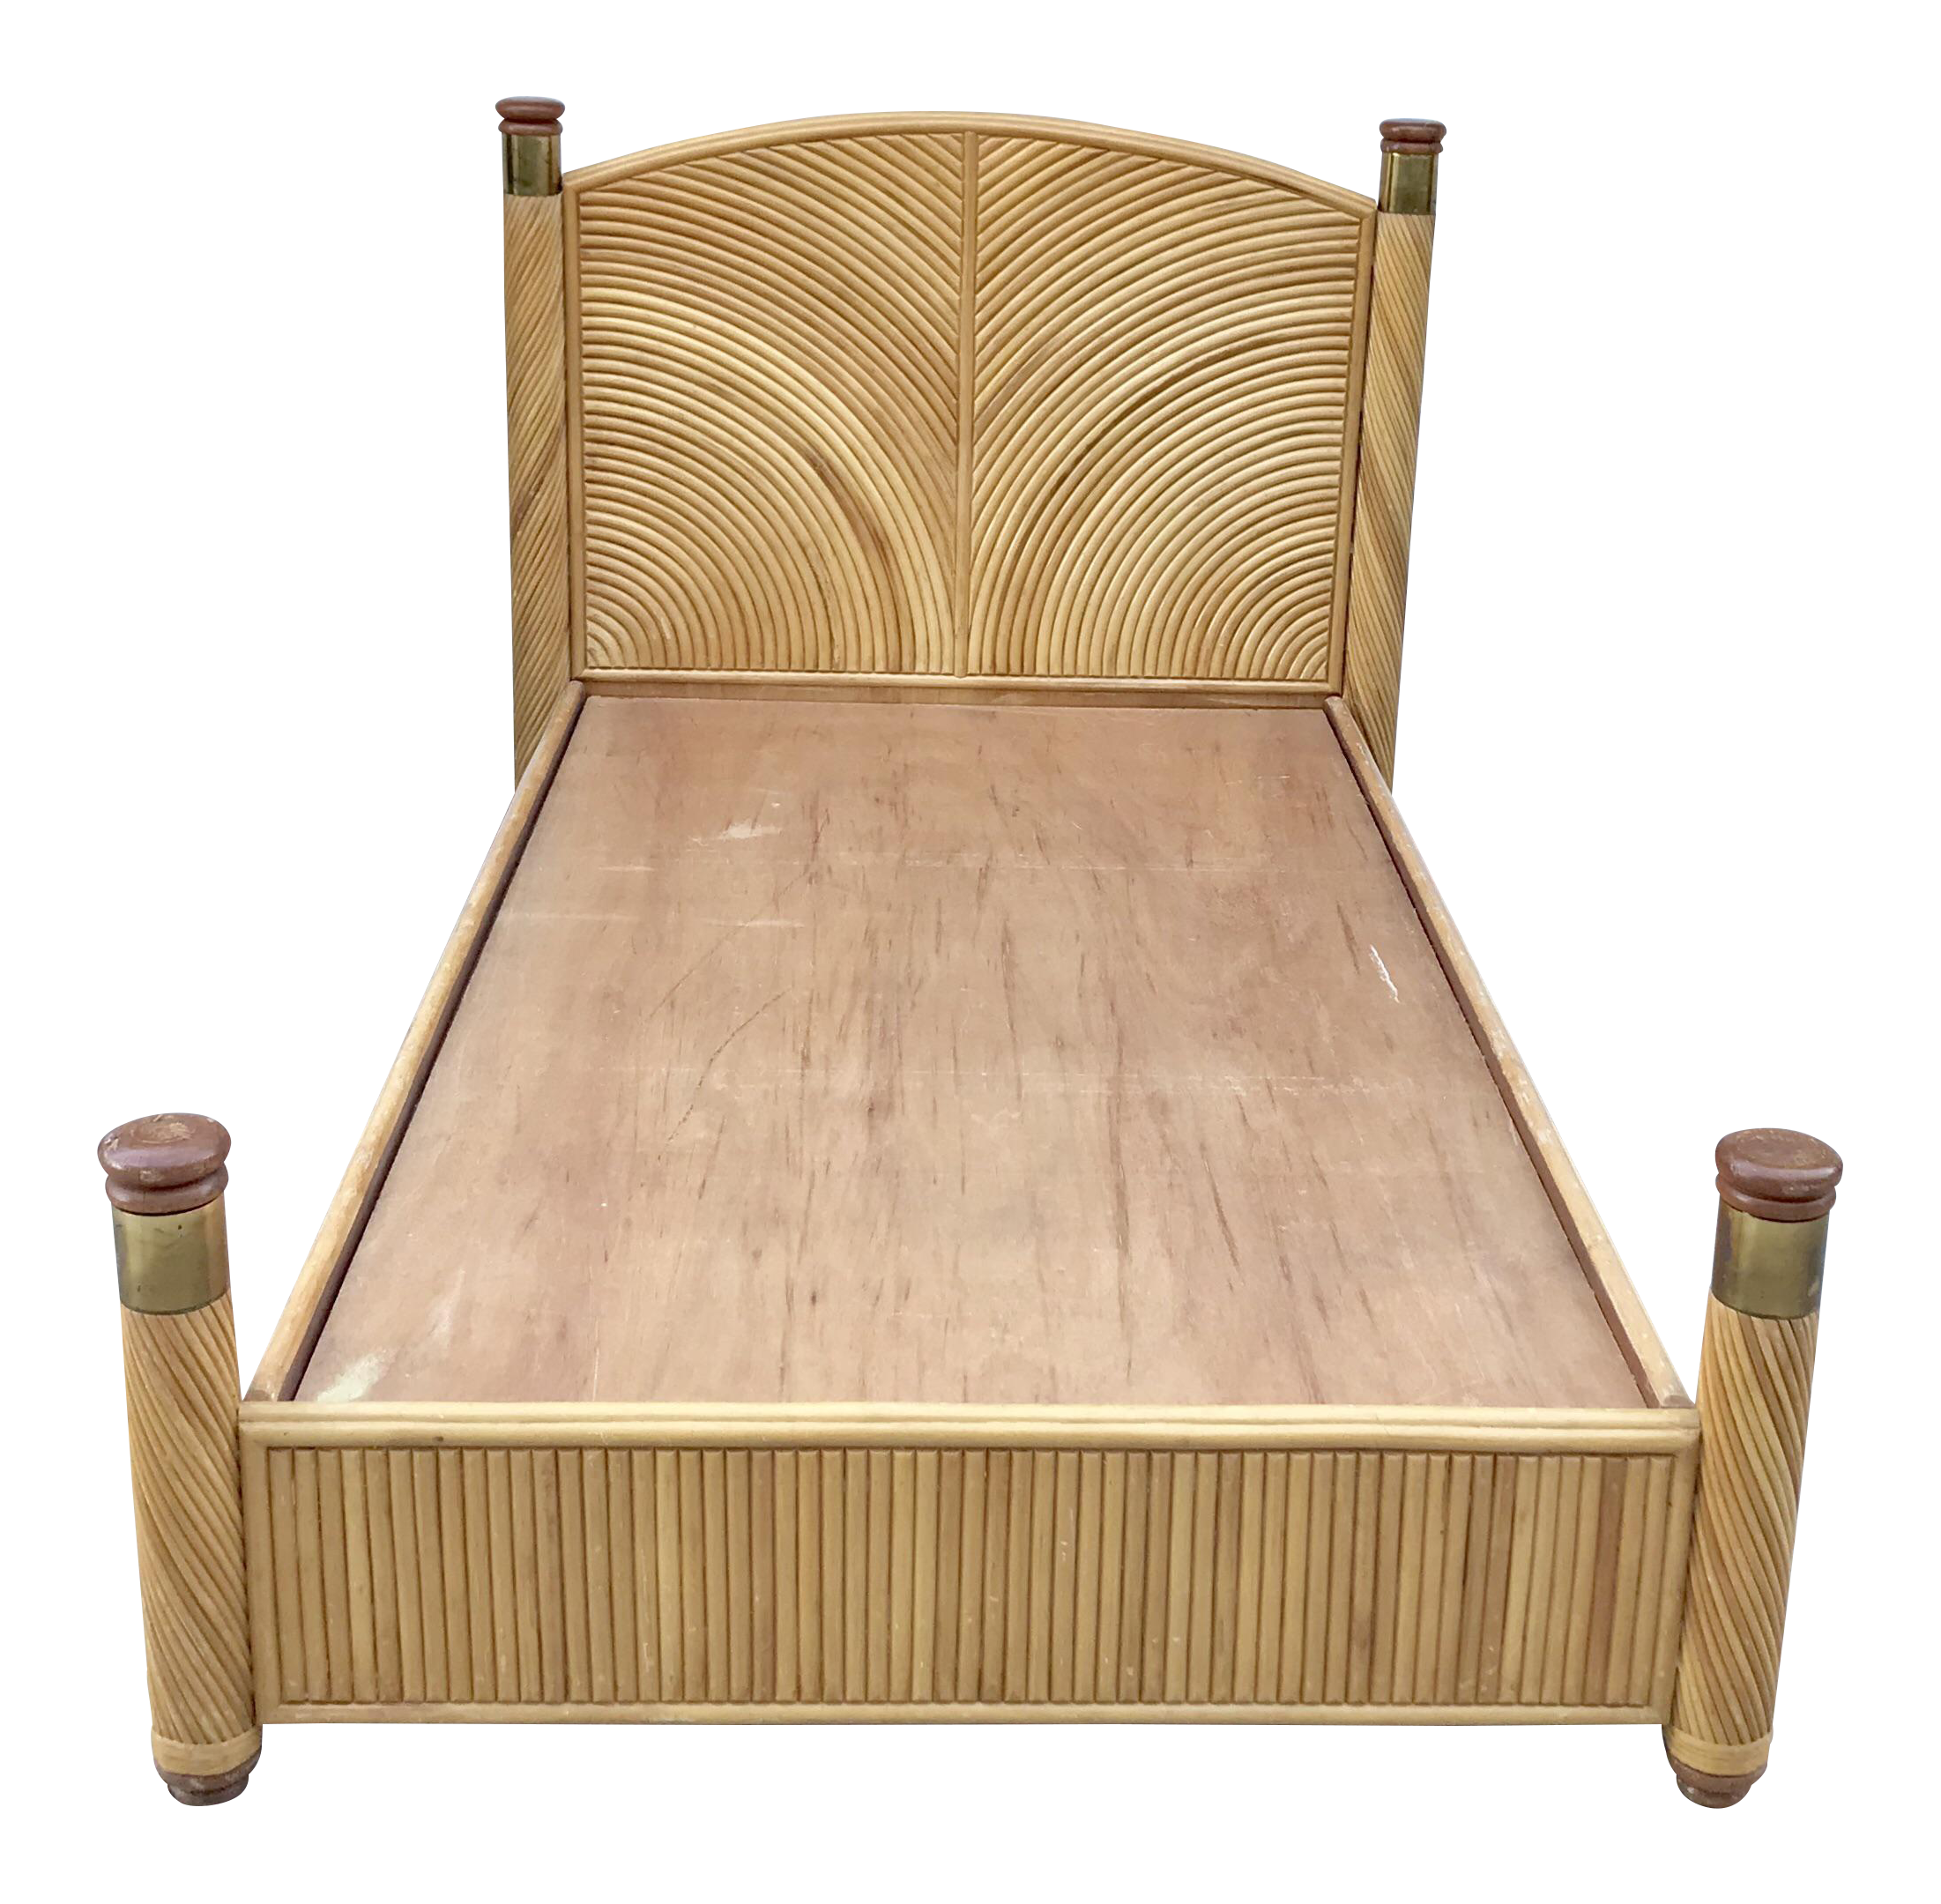 drawing bed wooden